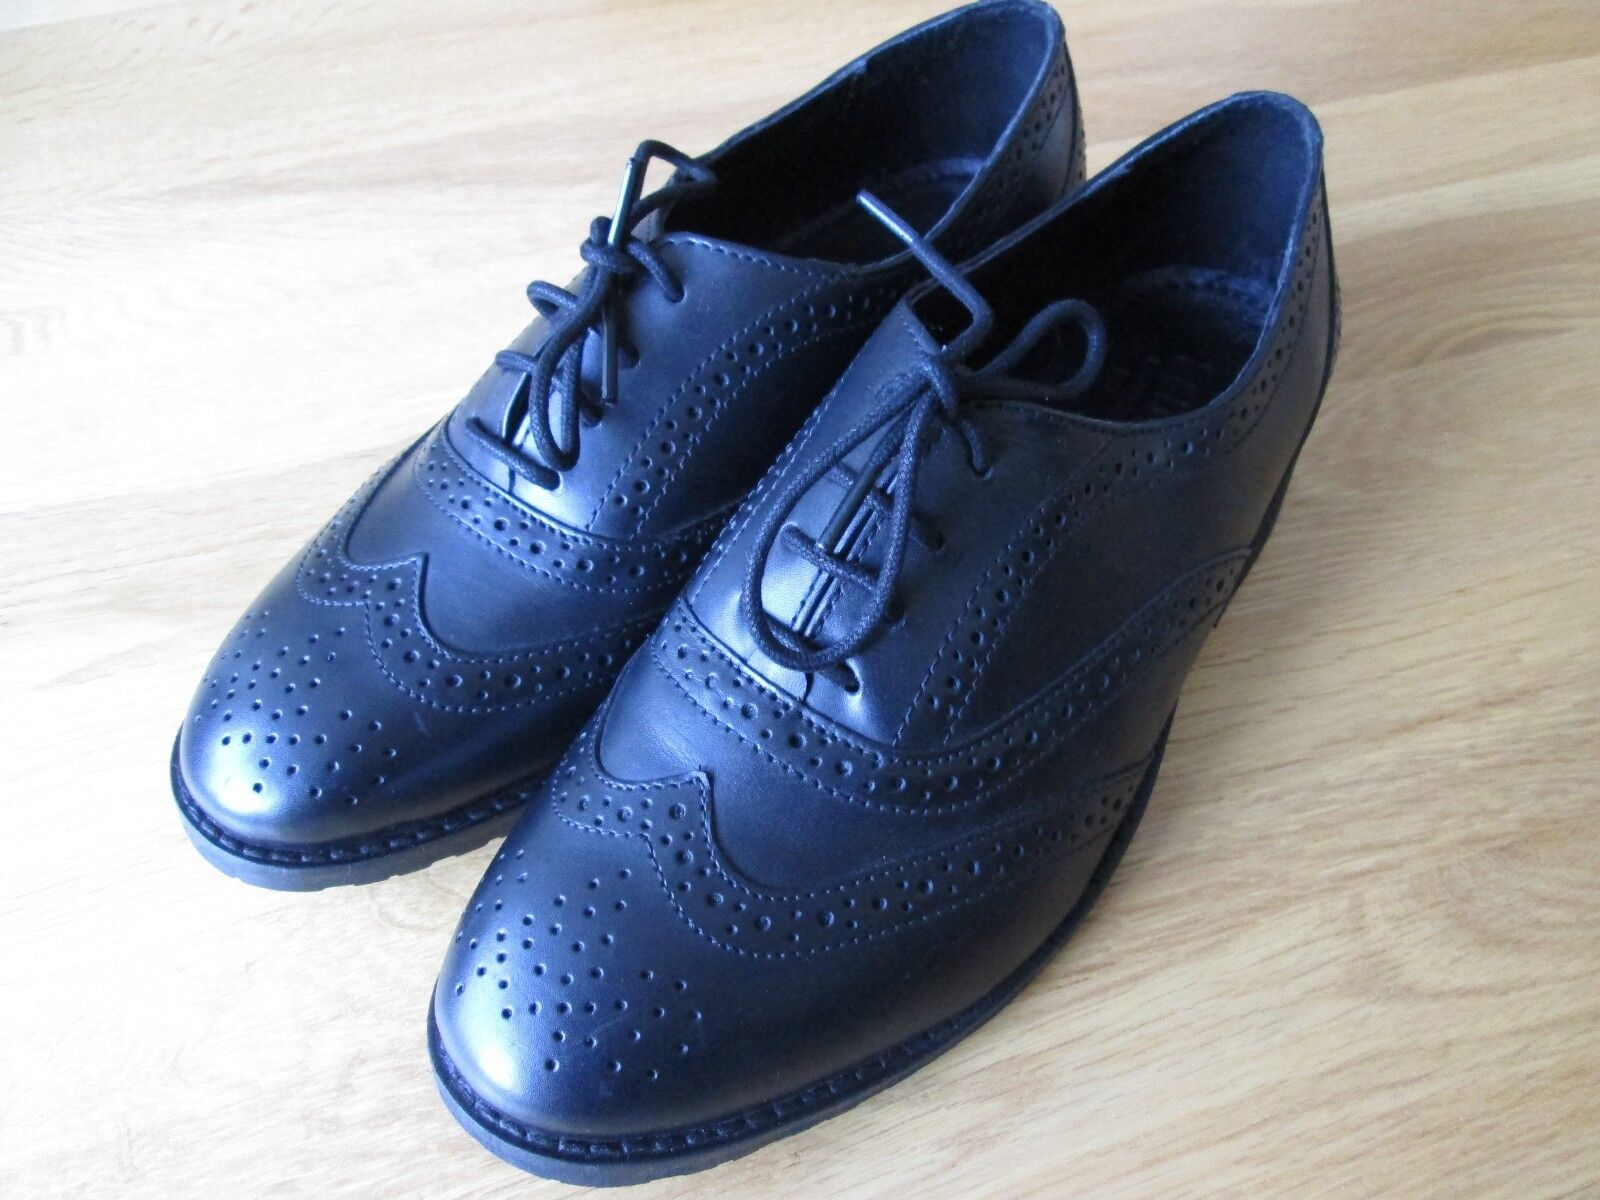 Brand new ladies blogger style Bertie black leather Brogues